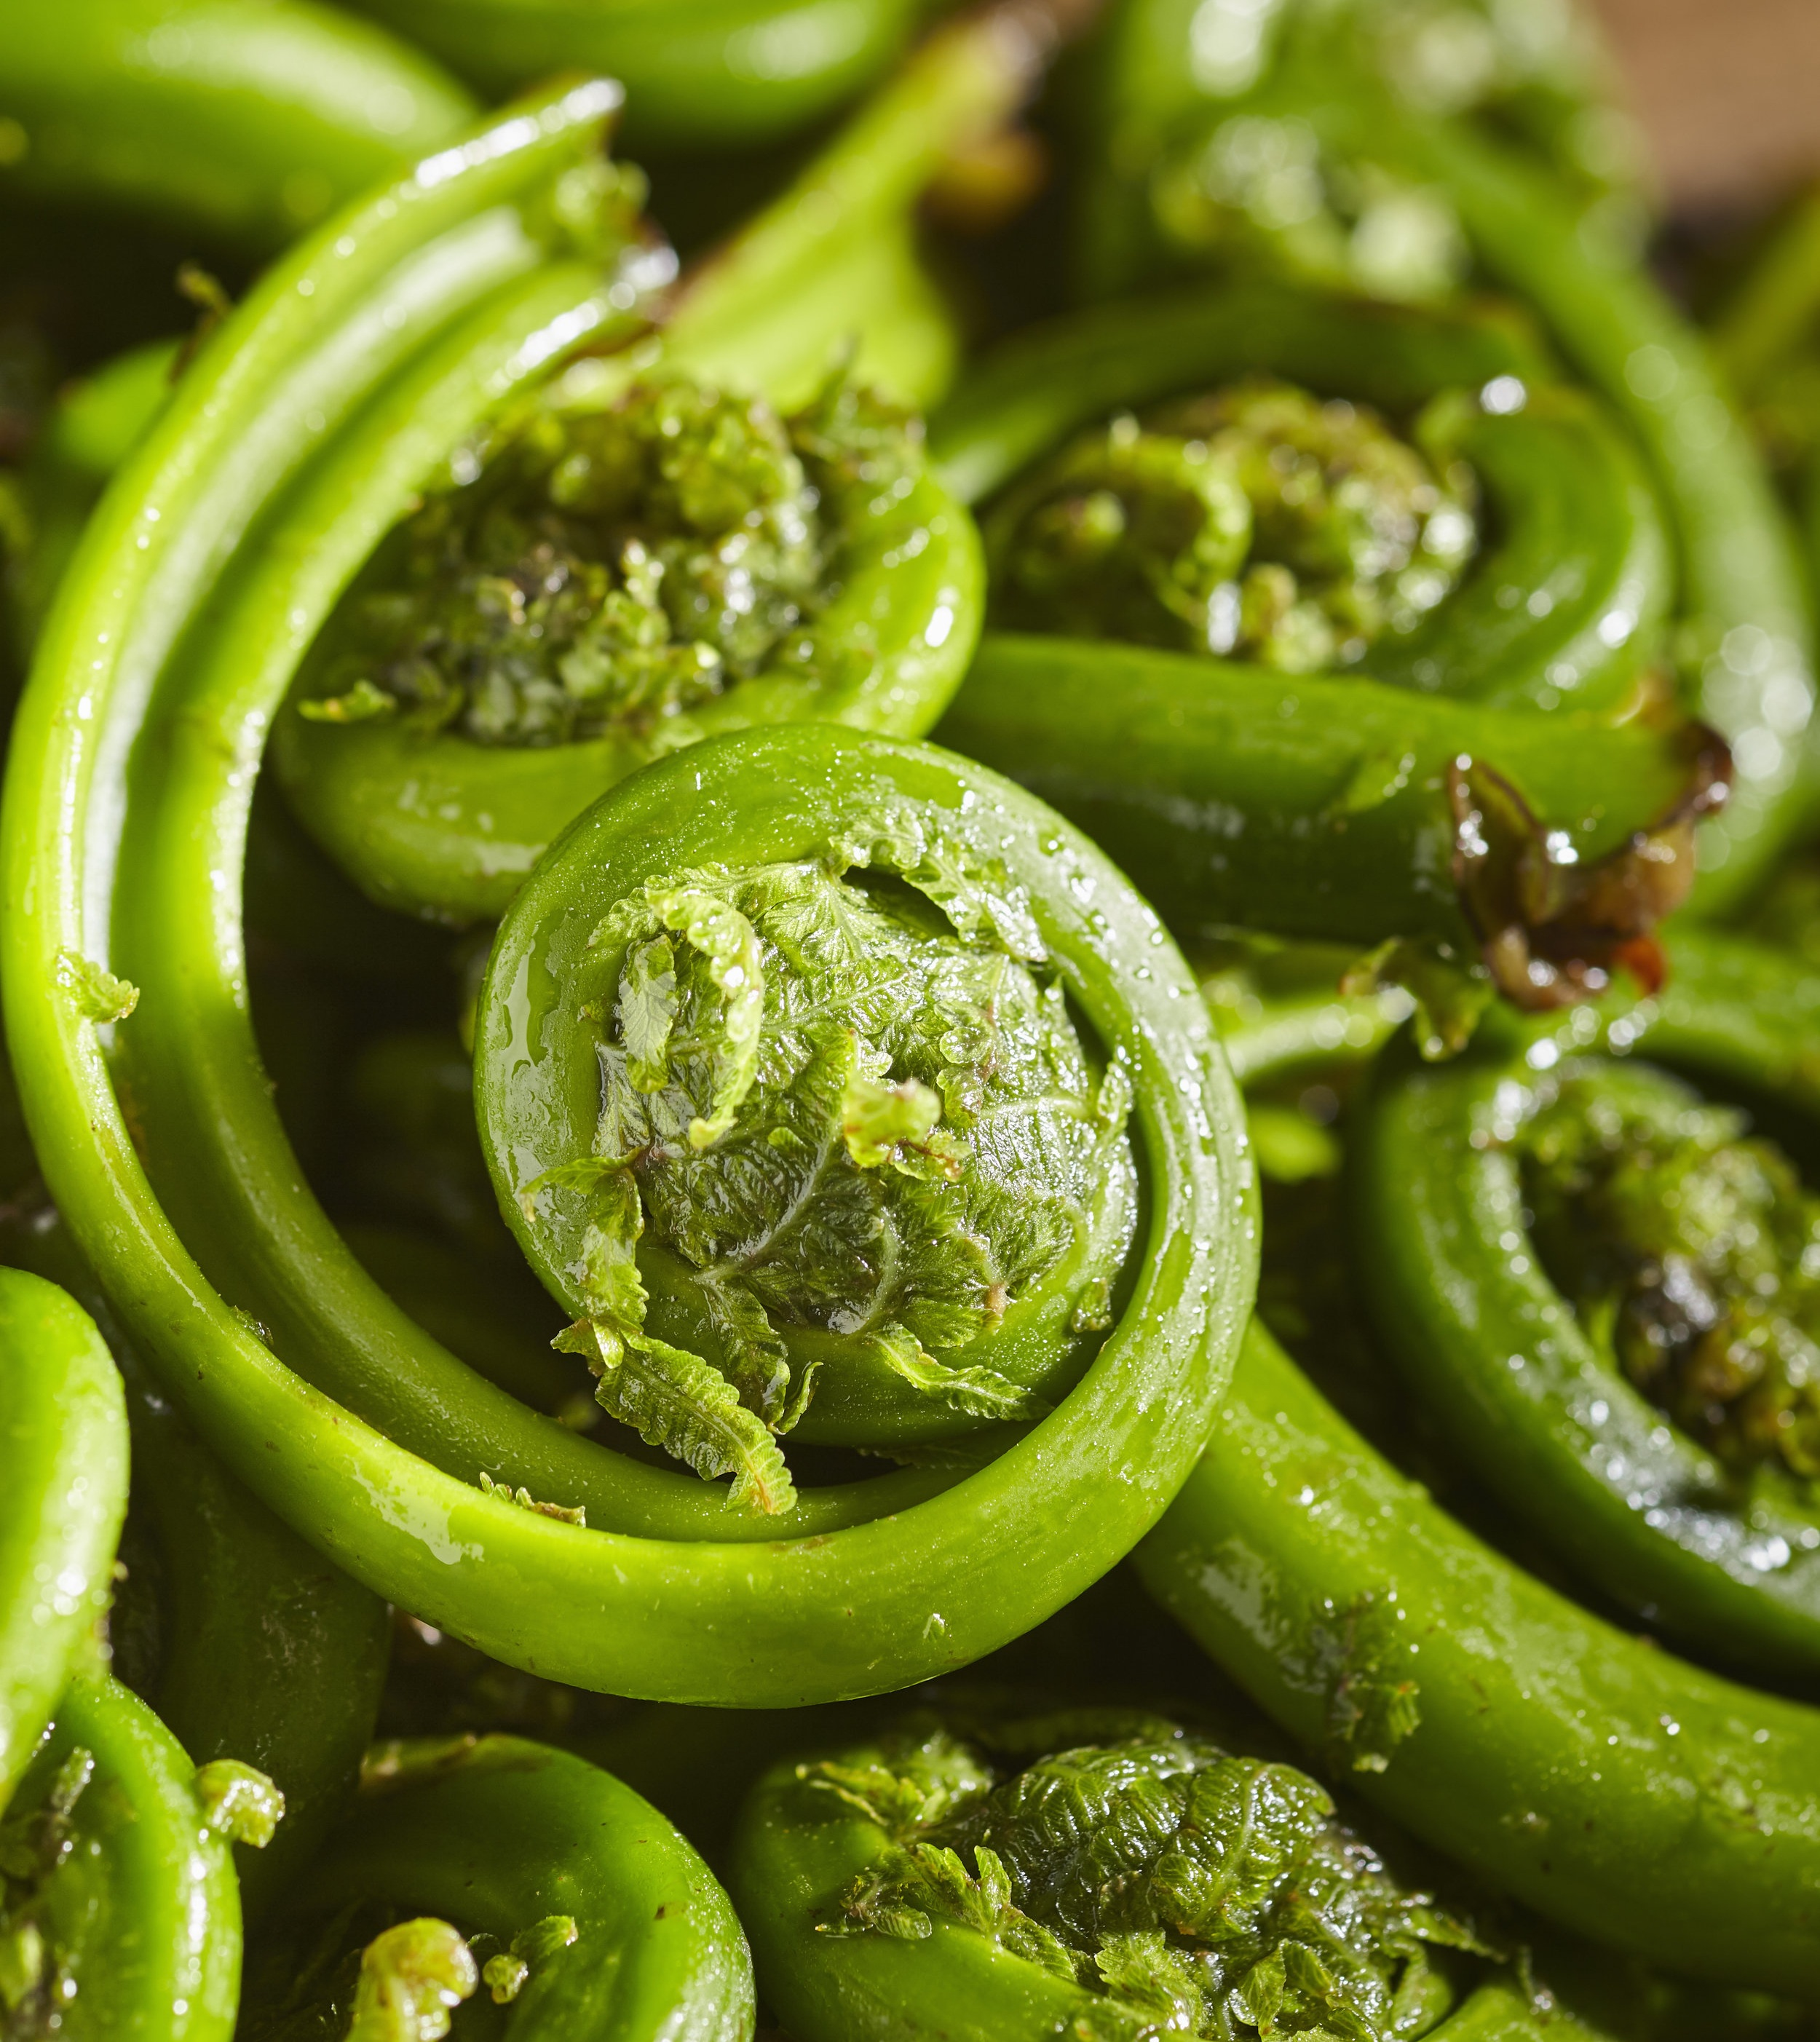 - This simple sauté is a lovely way to enjoy the earthy freshness of fiddlehead ferns.